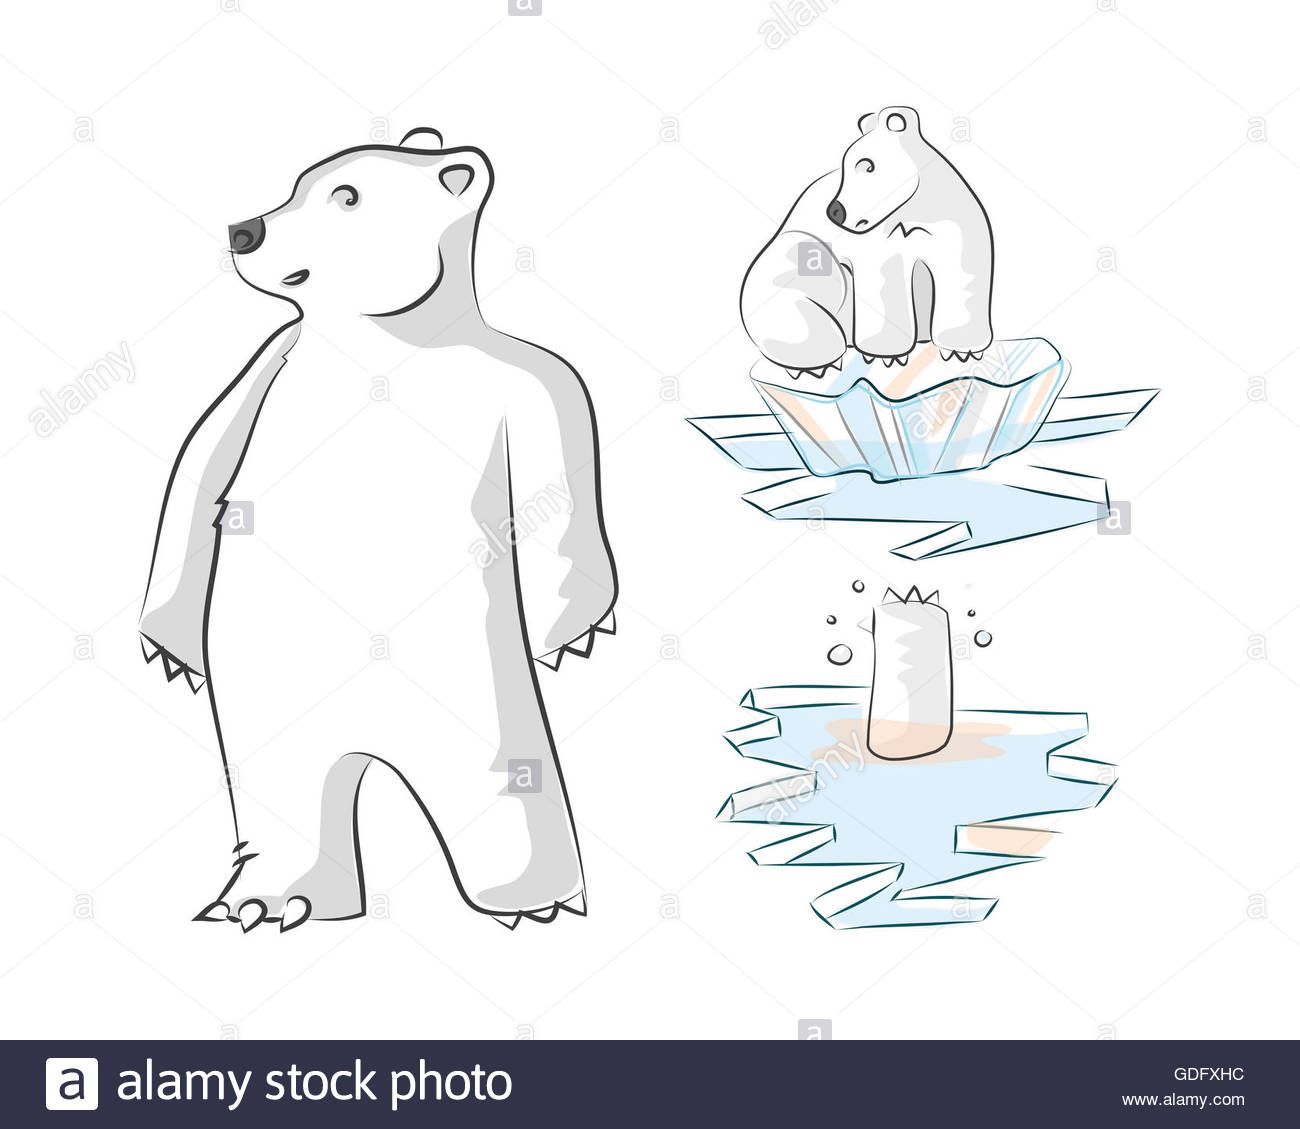 1300x1129 Hand Drawn Illustration And Drawing Of A Polar Bear On Melting Ice